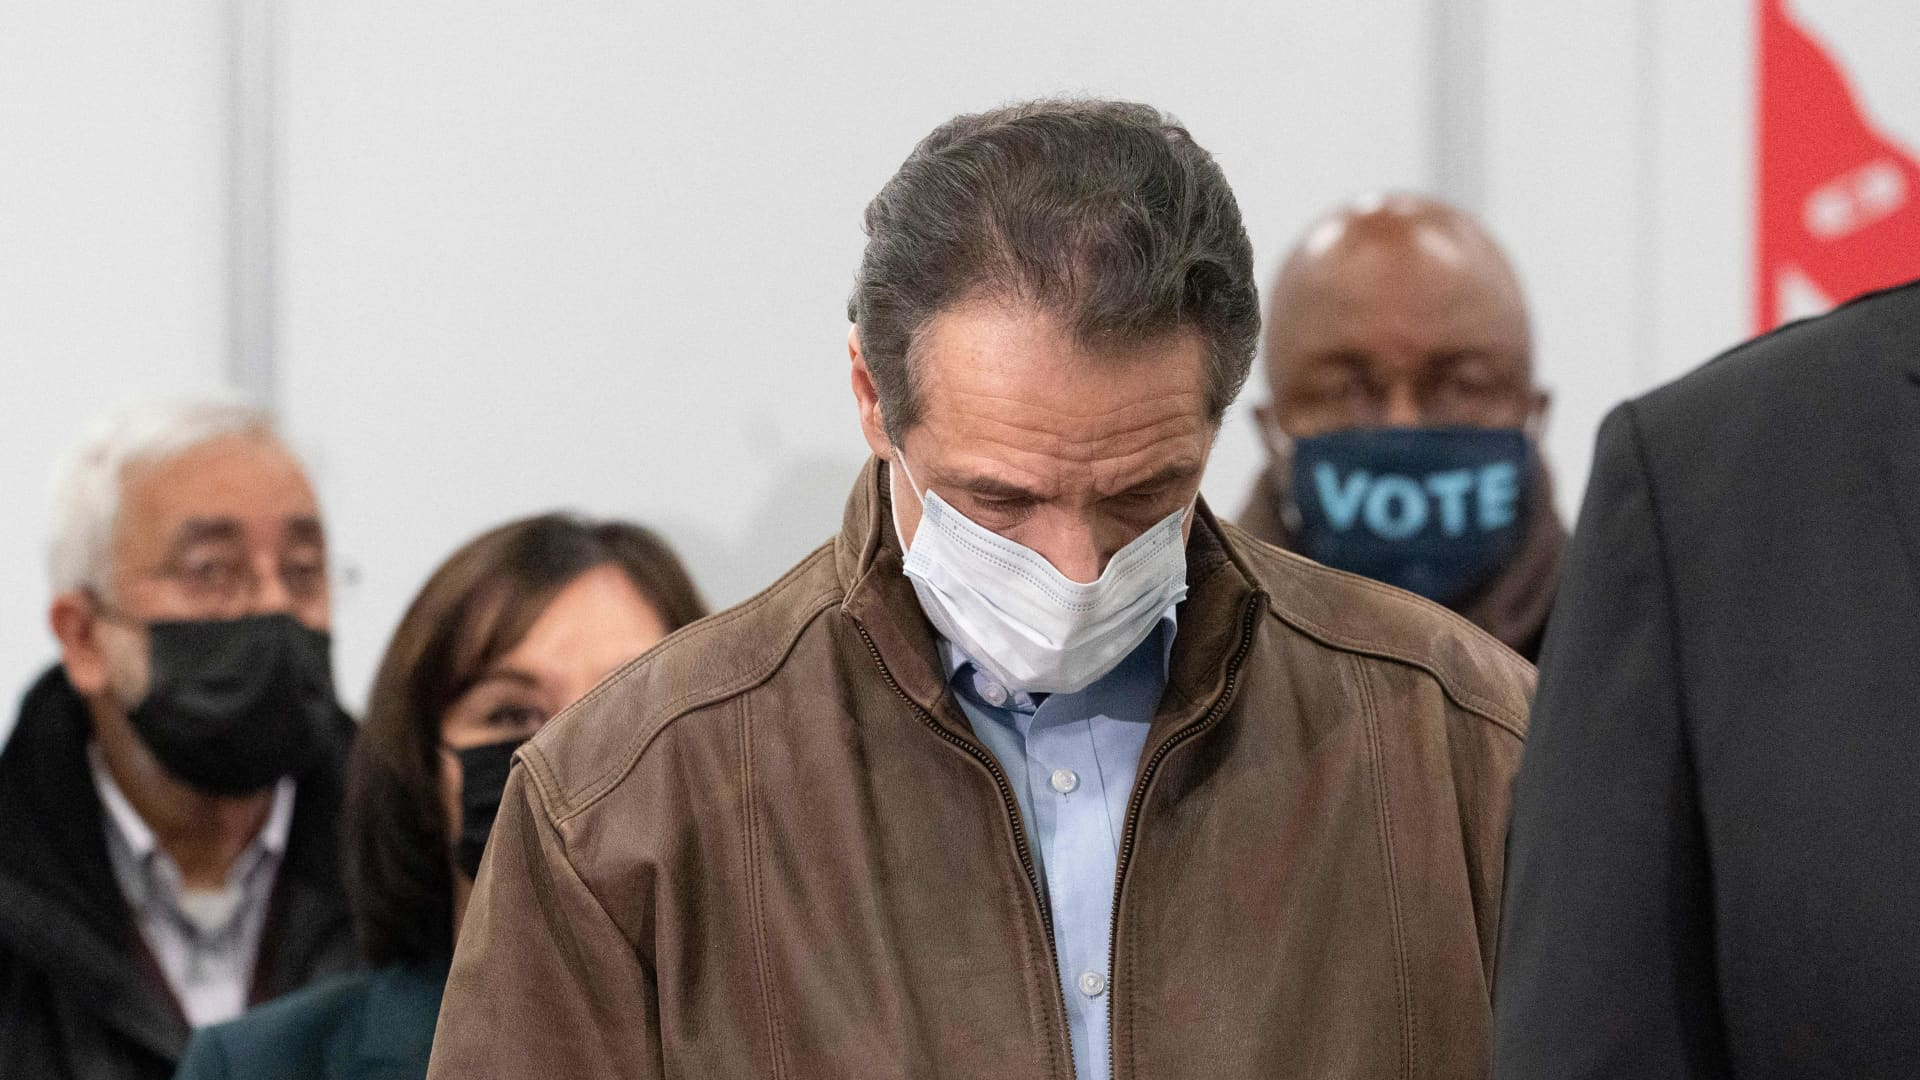 Governor Andrew Cuomo touches his nose during a visit to a new Covid-19 vaccination site, Monday, March 15, 2021, at the State University of New York in Old Westbury.